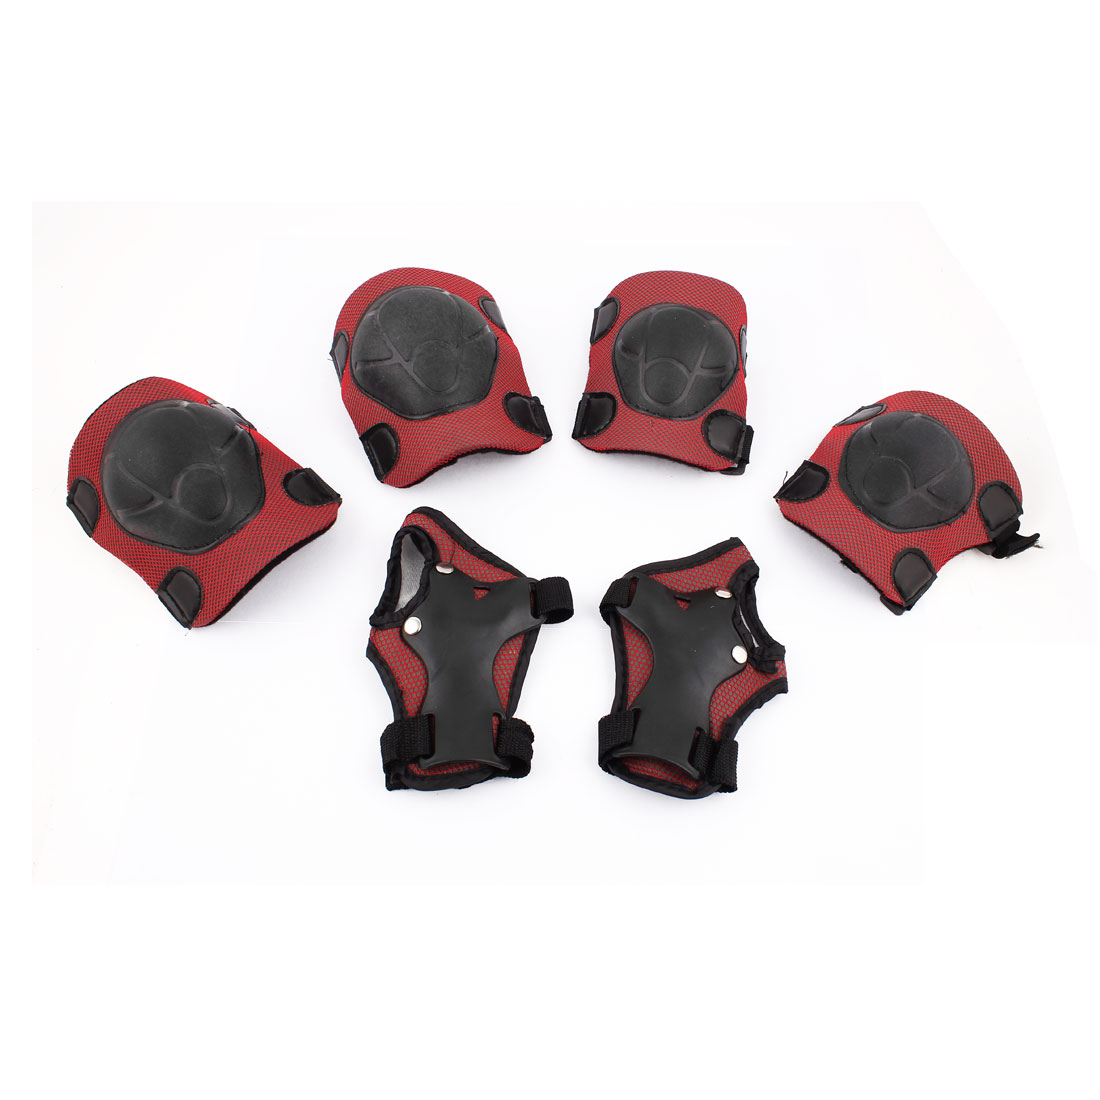 Skating Skiing Snowboarding Knee Pads Tactical Kneecap Kneelet Protector 4Pcs